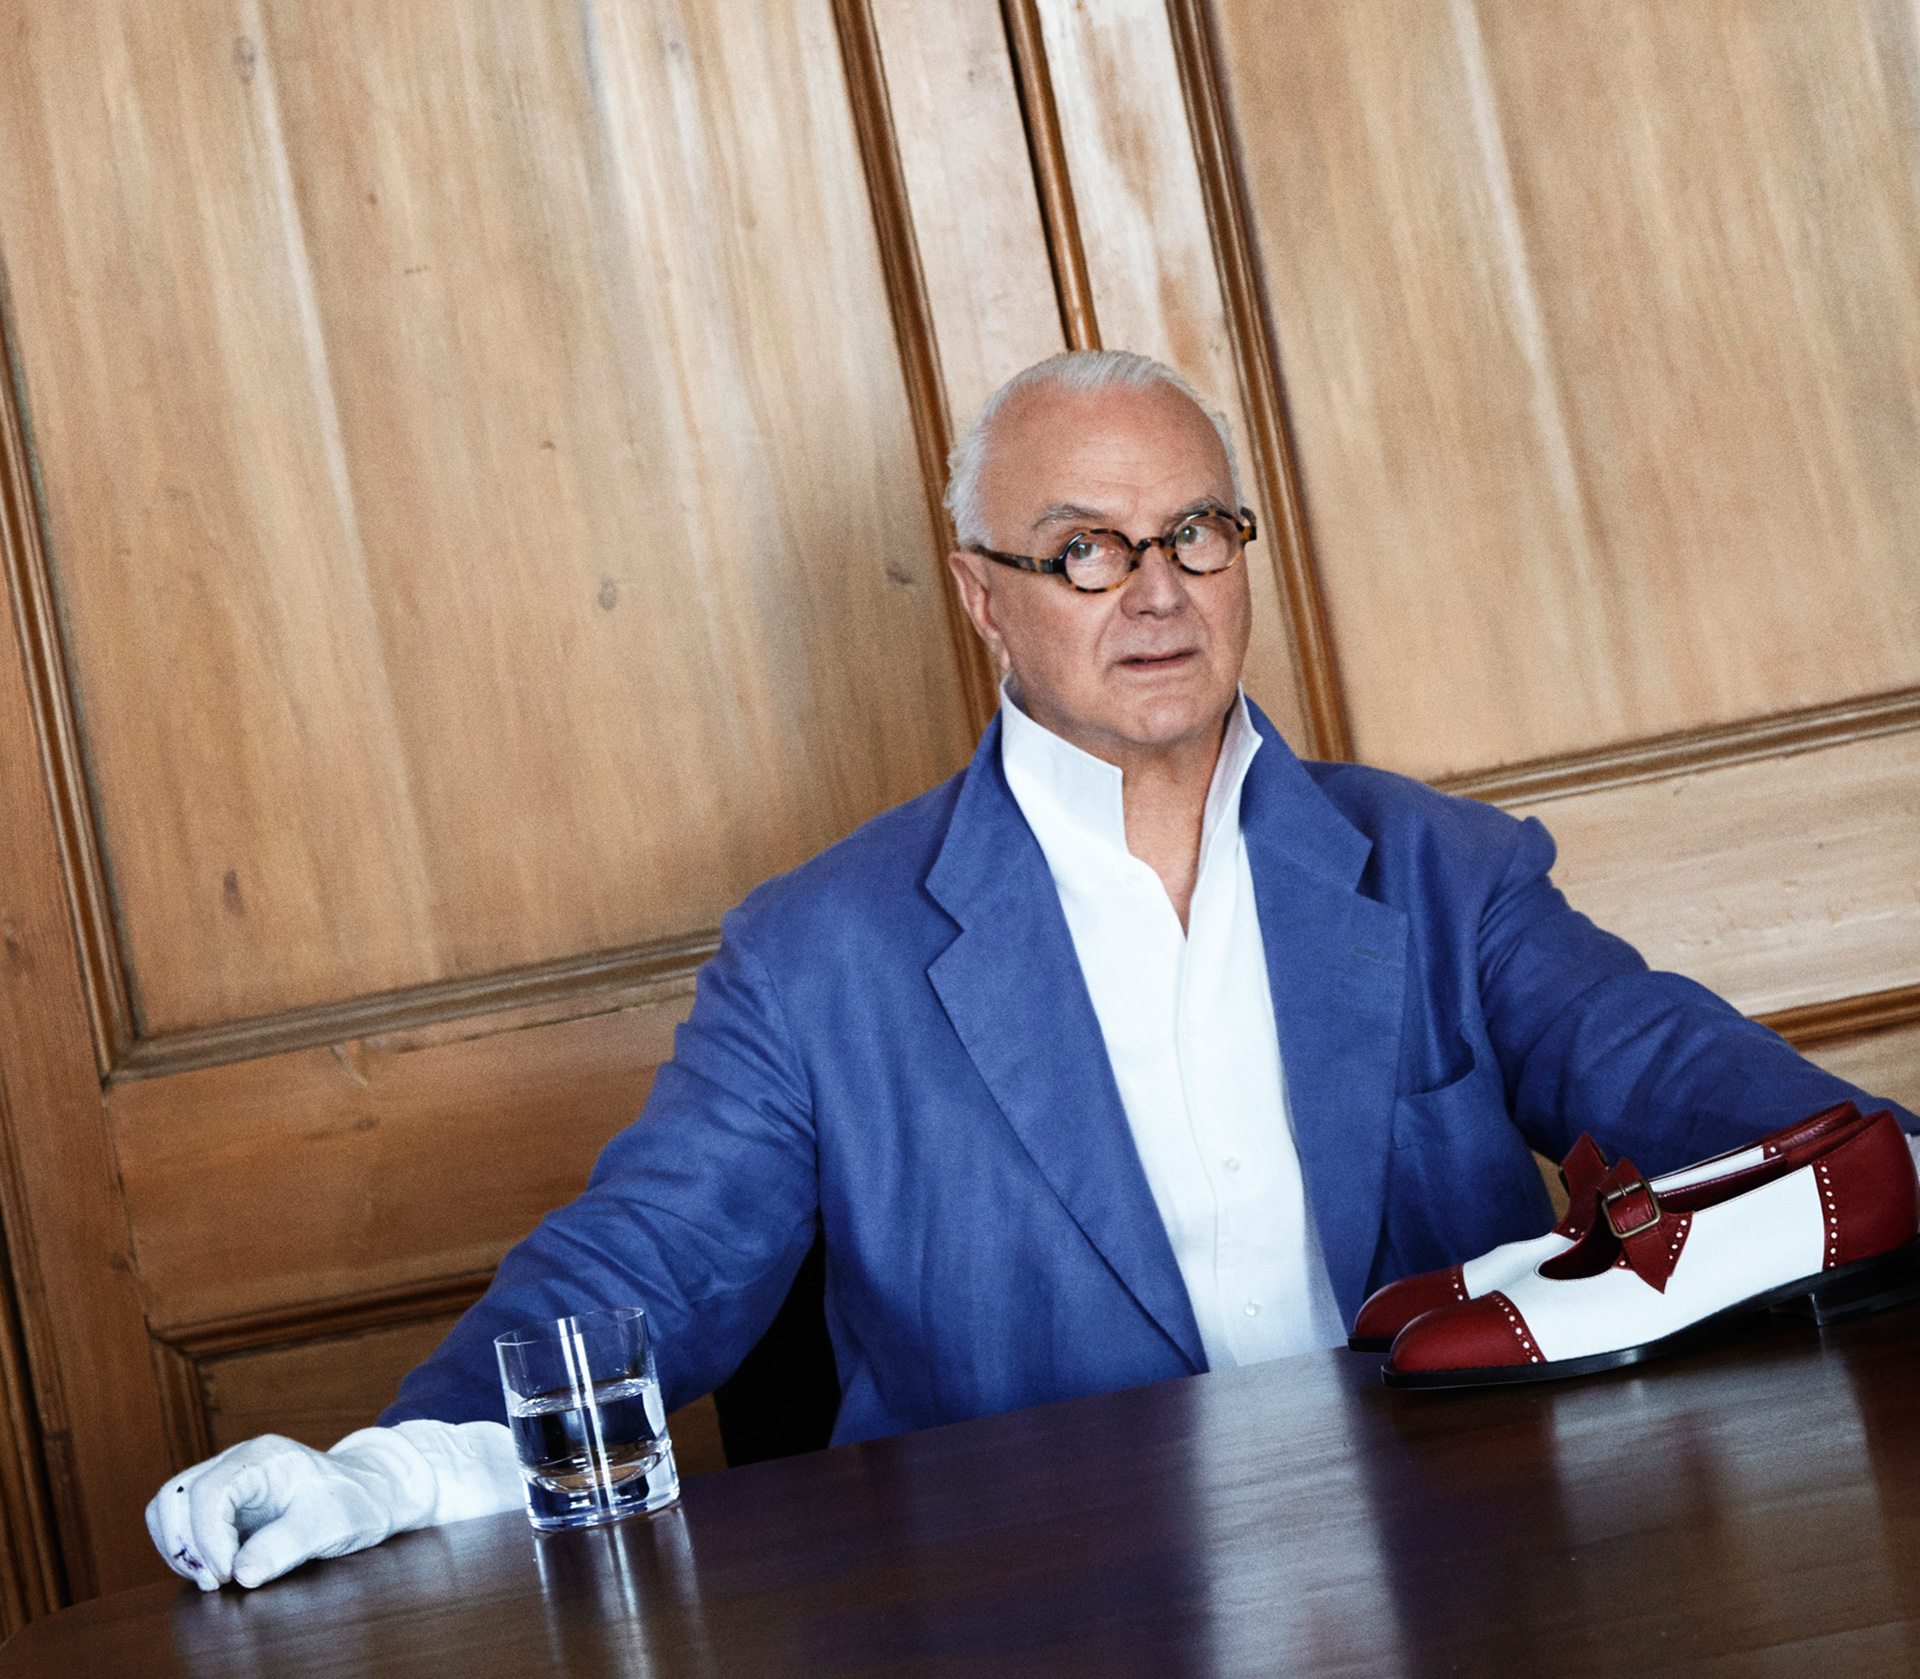 With a career spanning almost 50 years, Manolo Blahnik is one of the world's most influential footwear designers| An Enquiring Mind: Manolo Blahnik| The Wallace Collection| STIR